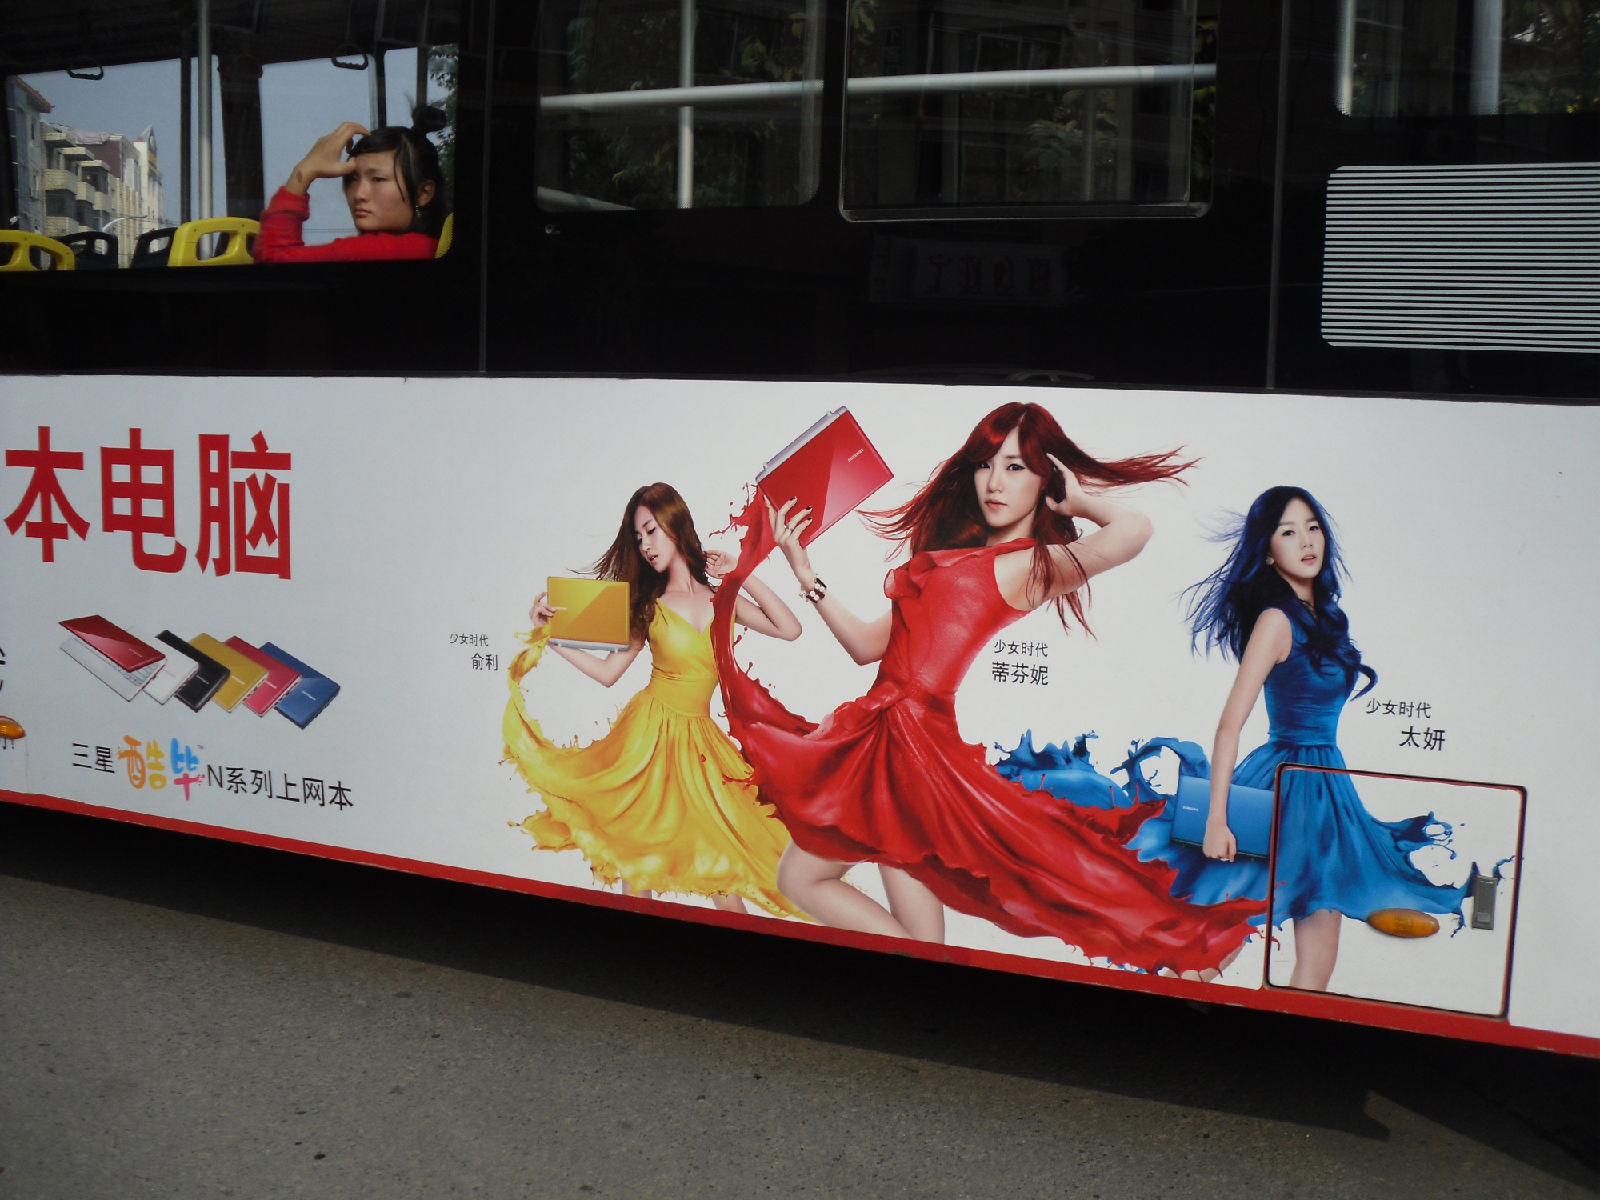 [Picture] SNSD spotted on a public transport in China! Snsd1